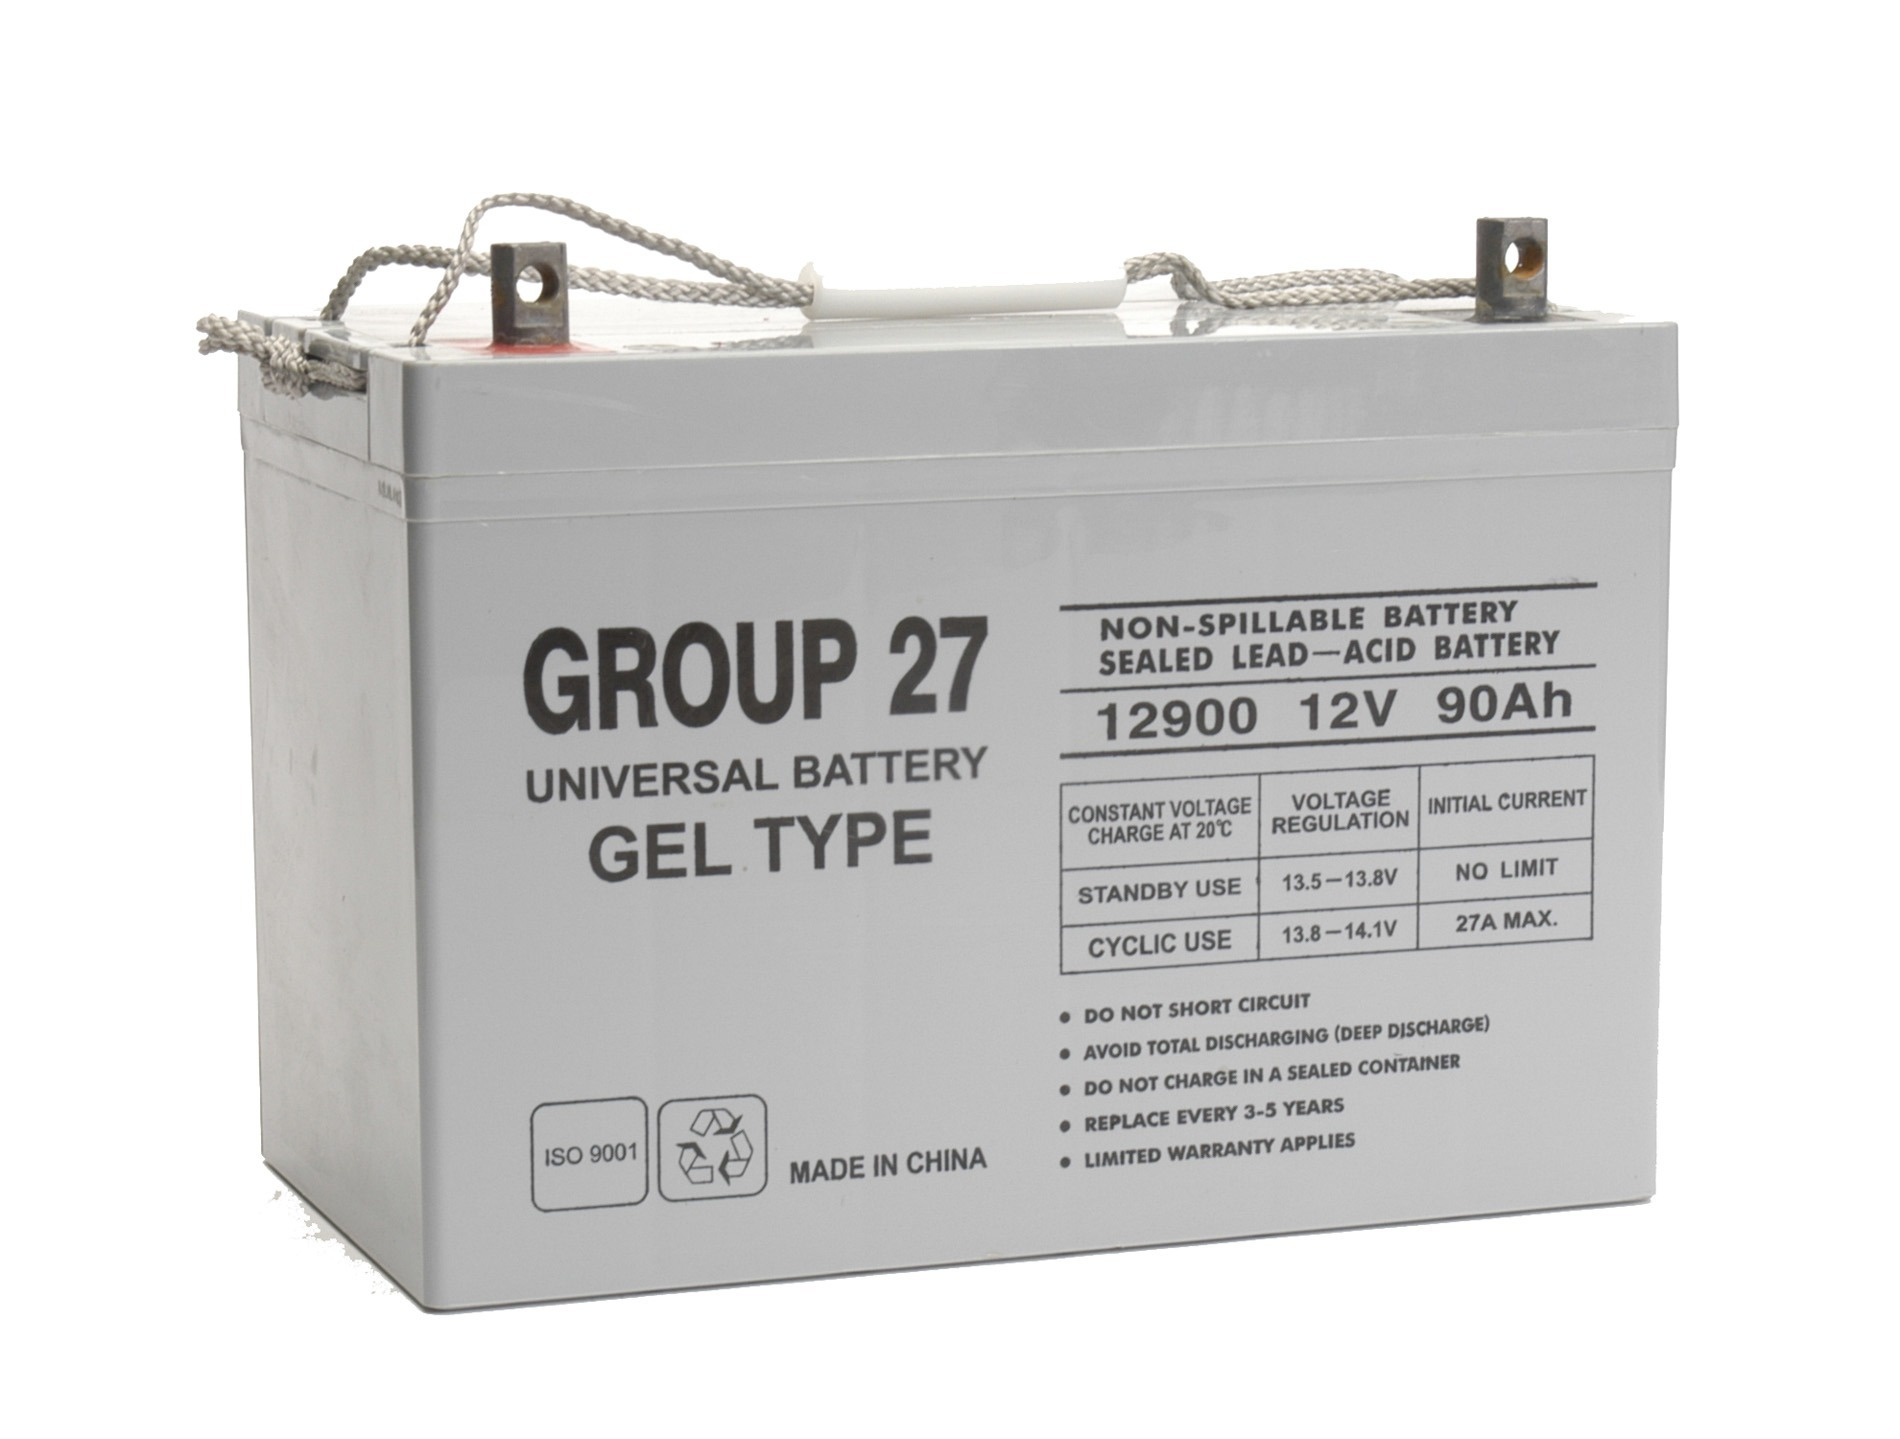 12v 90ah (Group 27) Gel Battery for Hammerhead Resort 21 and 30 Pool Vacuum